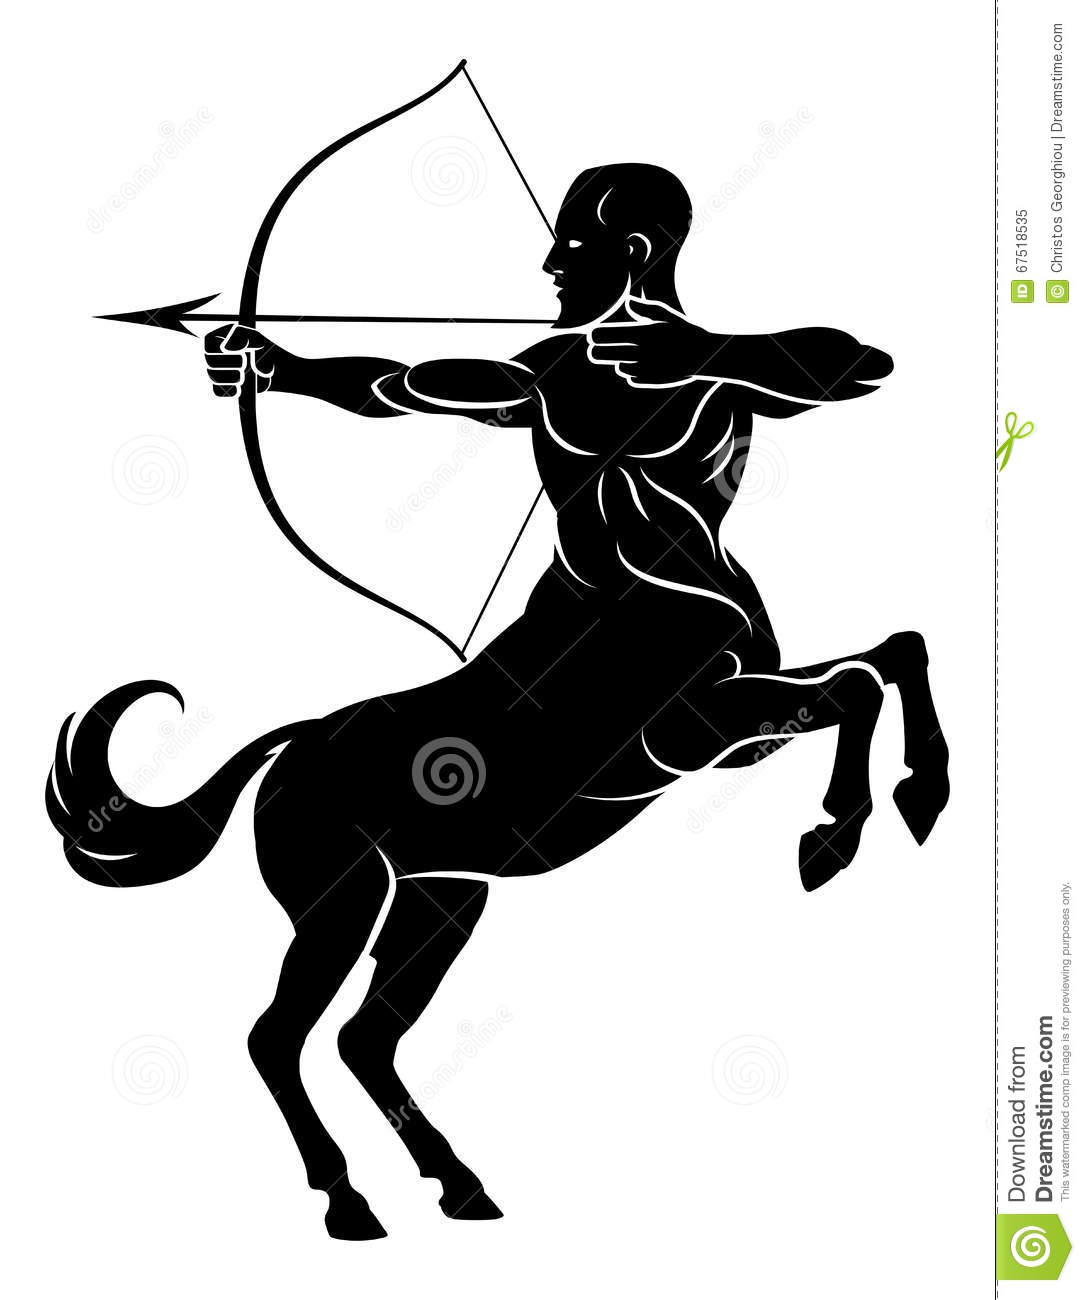 Centaur With Bow And Arrow Stock Vector - Image: 67518535